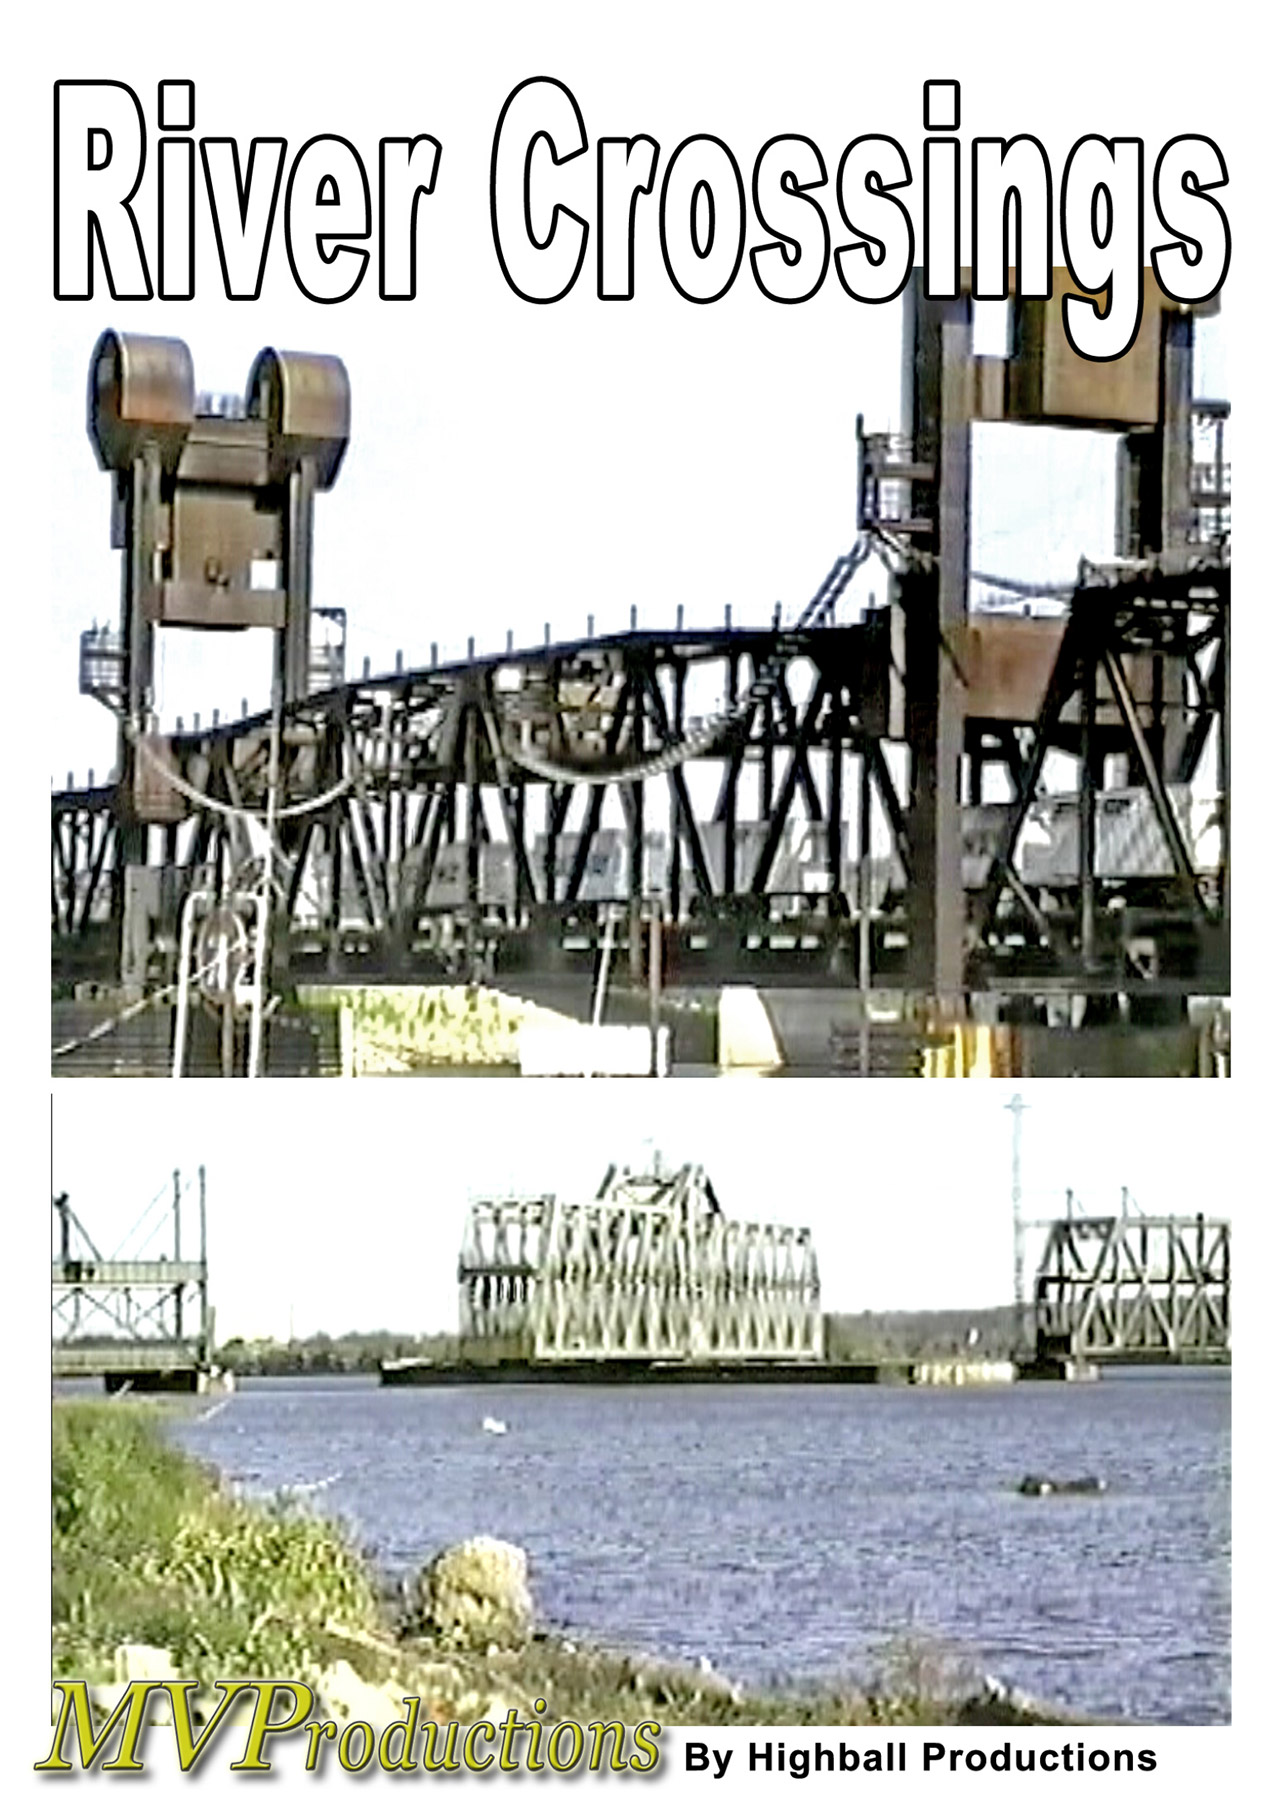 River Crossings Train Video Midwest Video Productions MVRC 601577879961